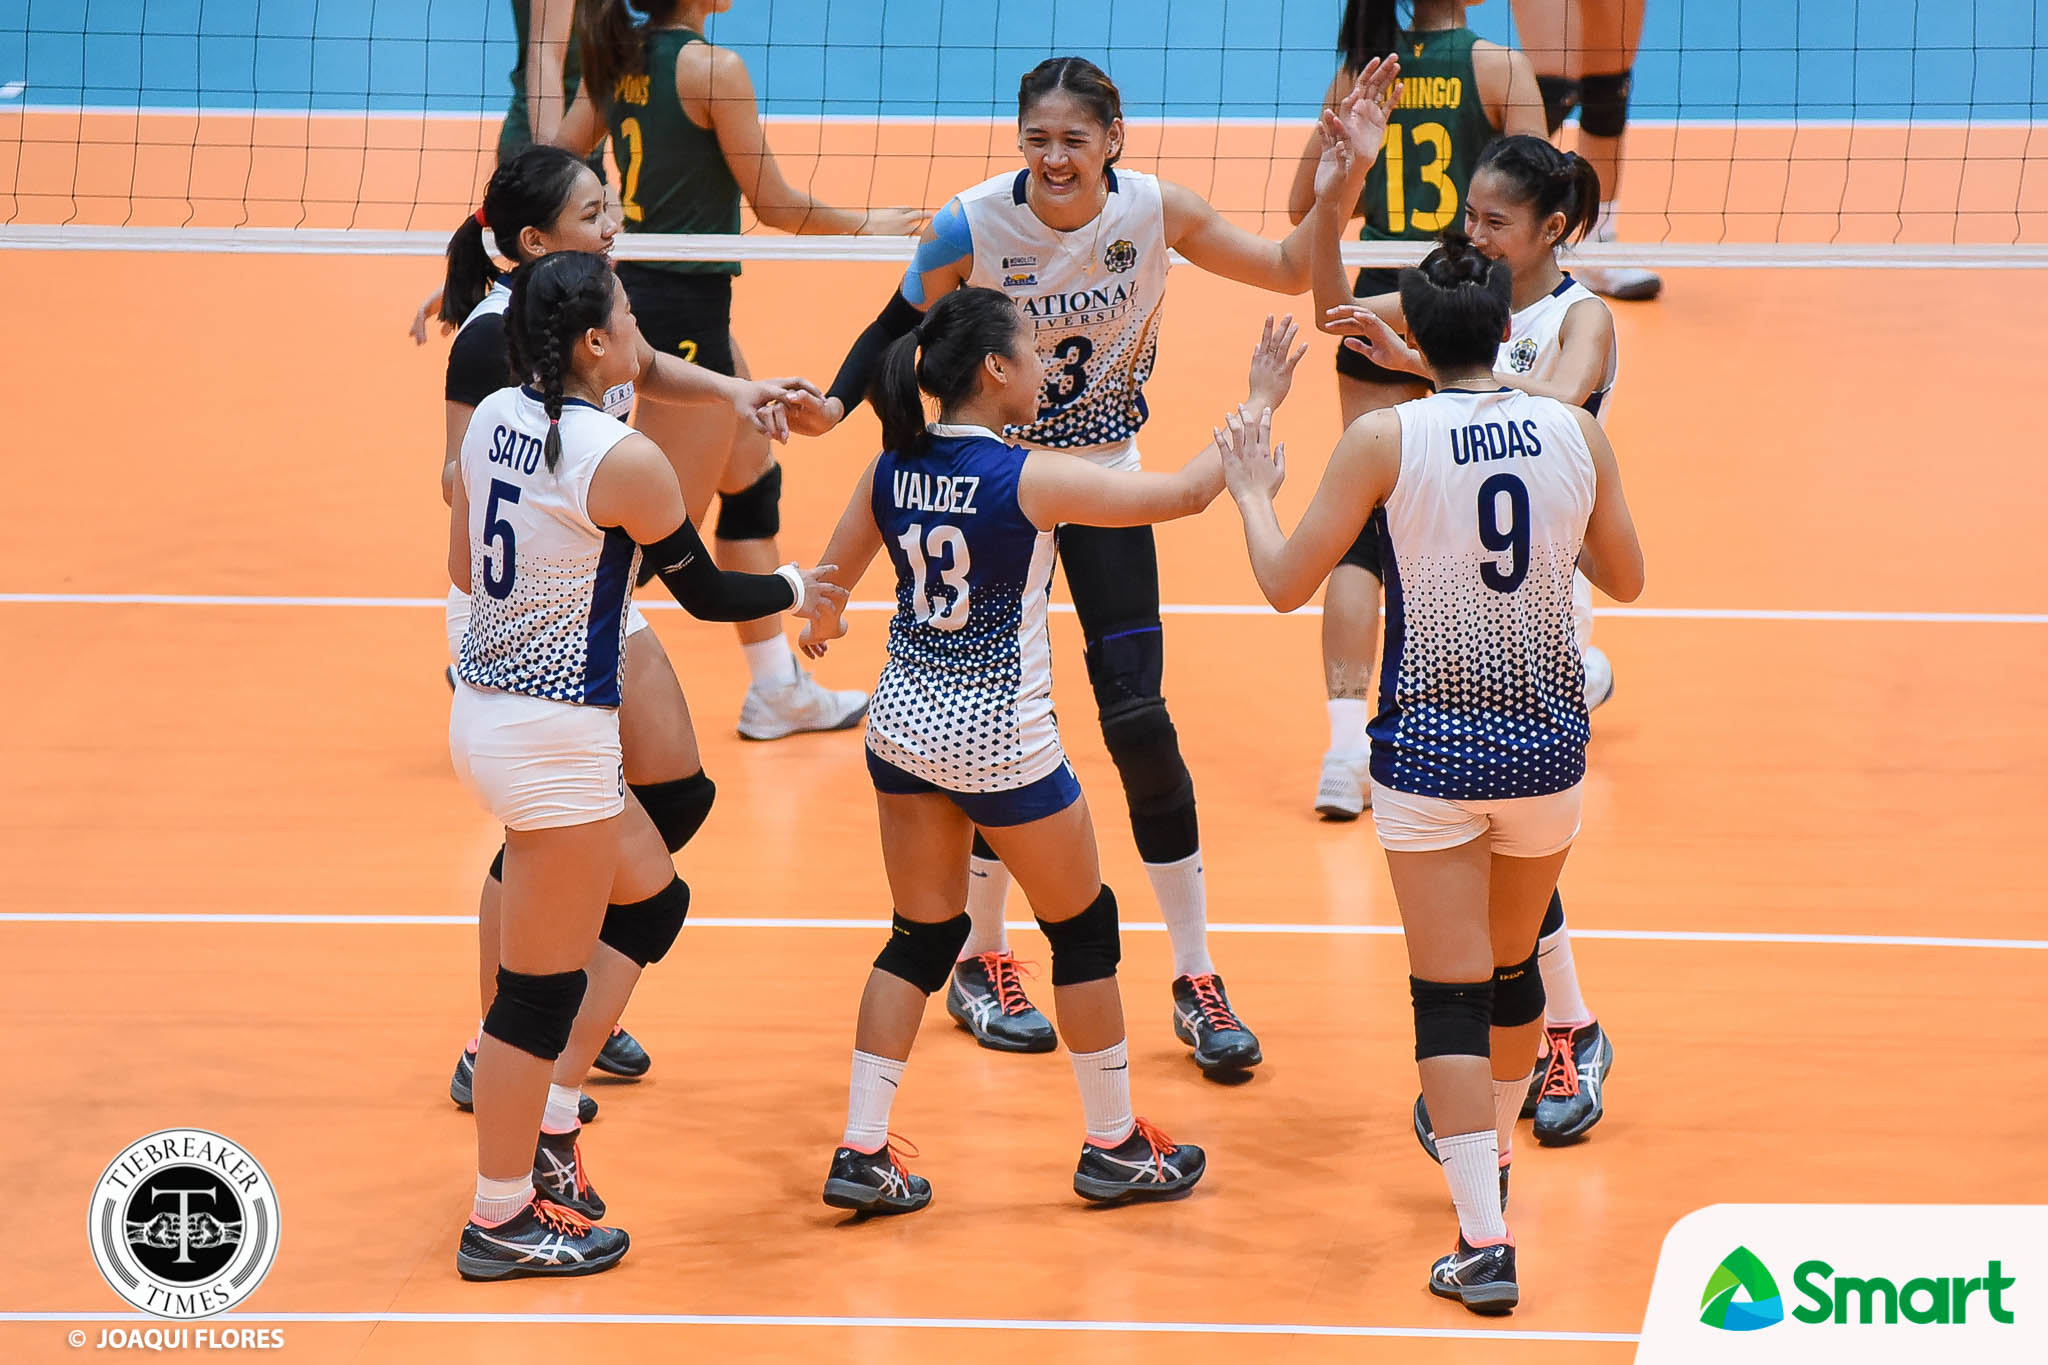 Tiebreaker Times After taking 'needed loss', Lady Bulldogs excited to face season's next cycle News NU UAAP Volleyball  UAAP Season 80 Women's Volleyball UAAP Season 80 NU Women's Volleyball Jaja Santiago Babes Castillo